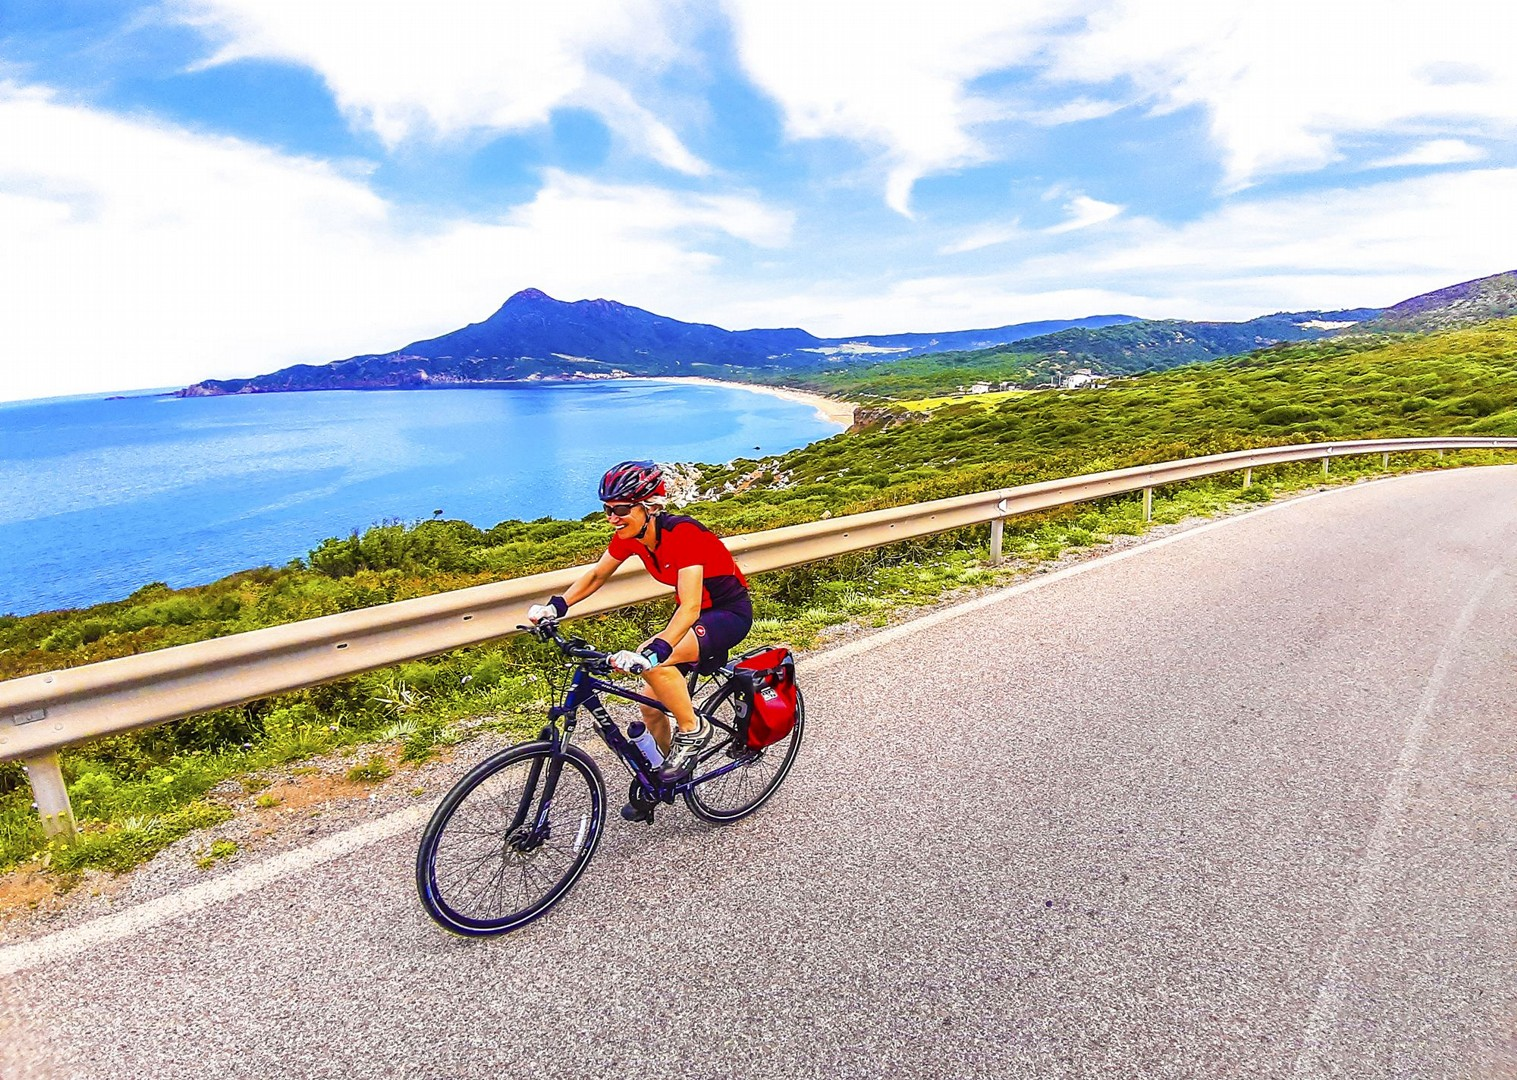 ddfsdf.jpg - Italy - Sardinia - Island Flavours - Self-Guided Leisure Cycling Holiday - Italia Leisure and Family Cycling